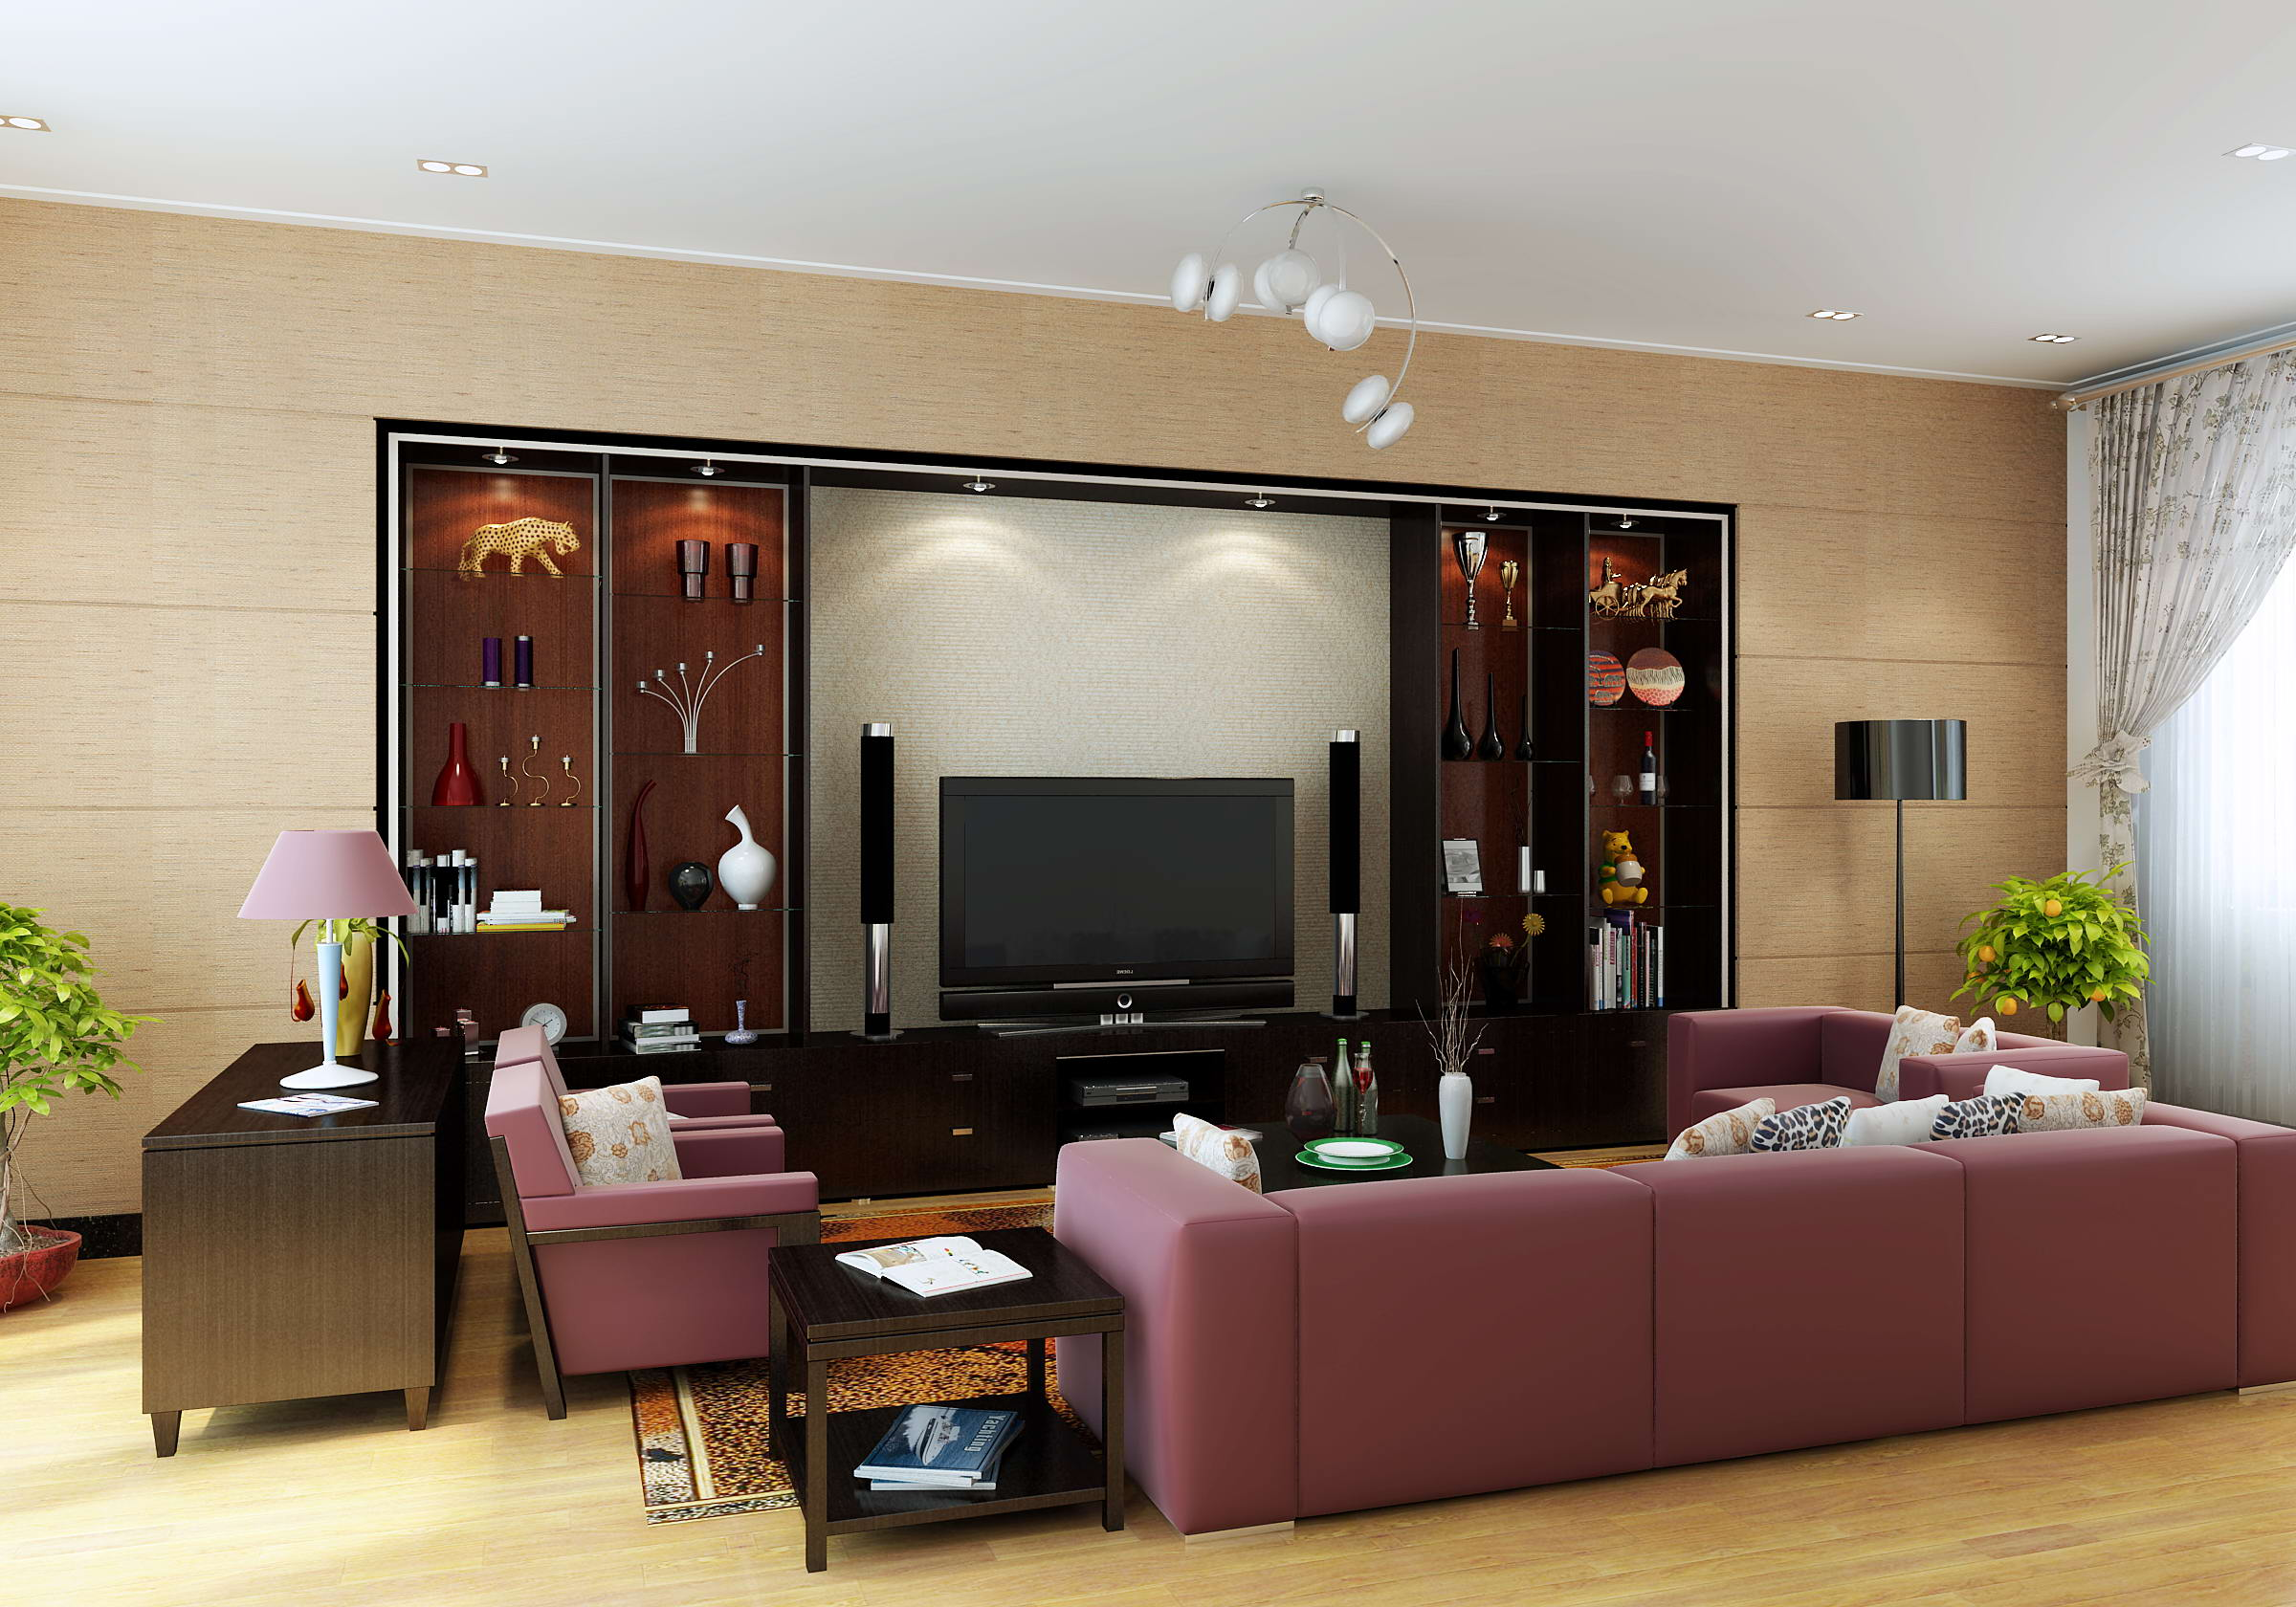 Living Hall With Wall Showcase 3d Model Max 1 ...